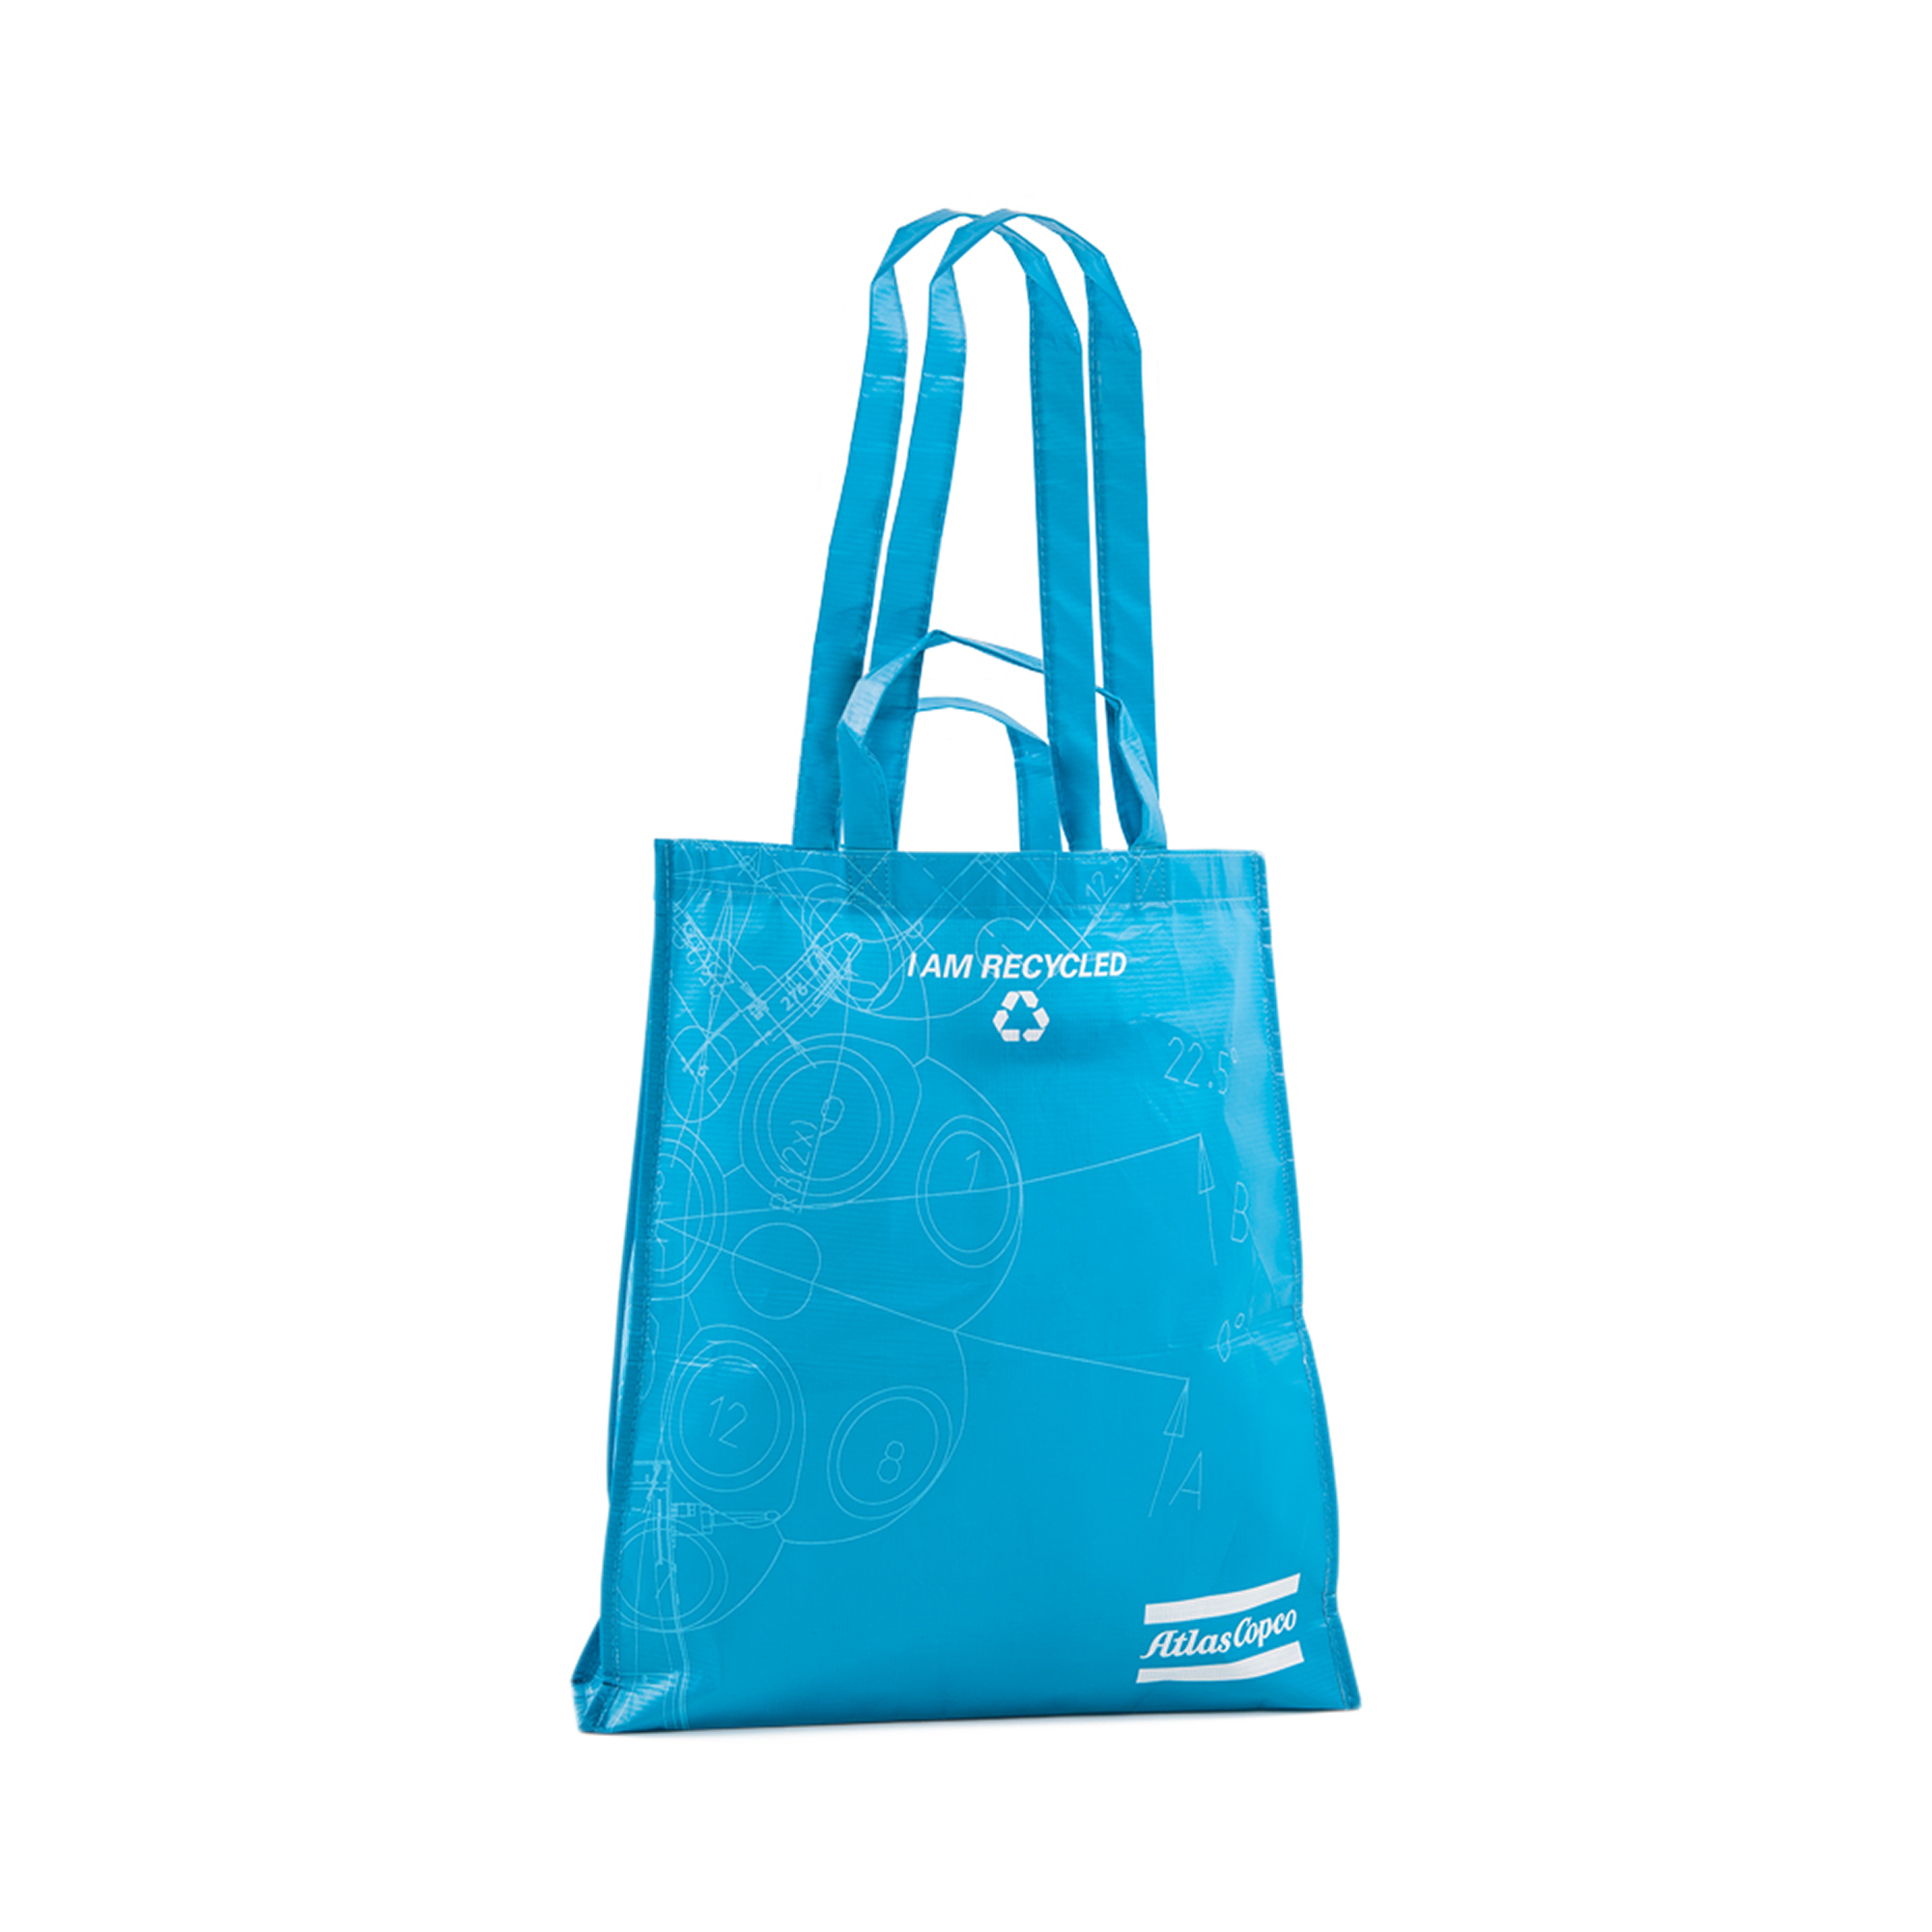 This BluePrint non-woven bag are made from recycled PET bottles The bag are popular for events, conferences, expos and tradeshows.